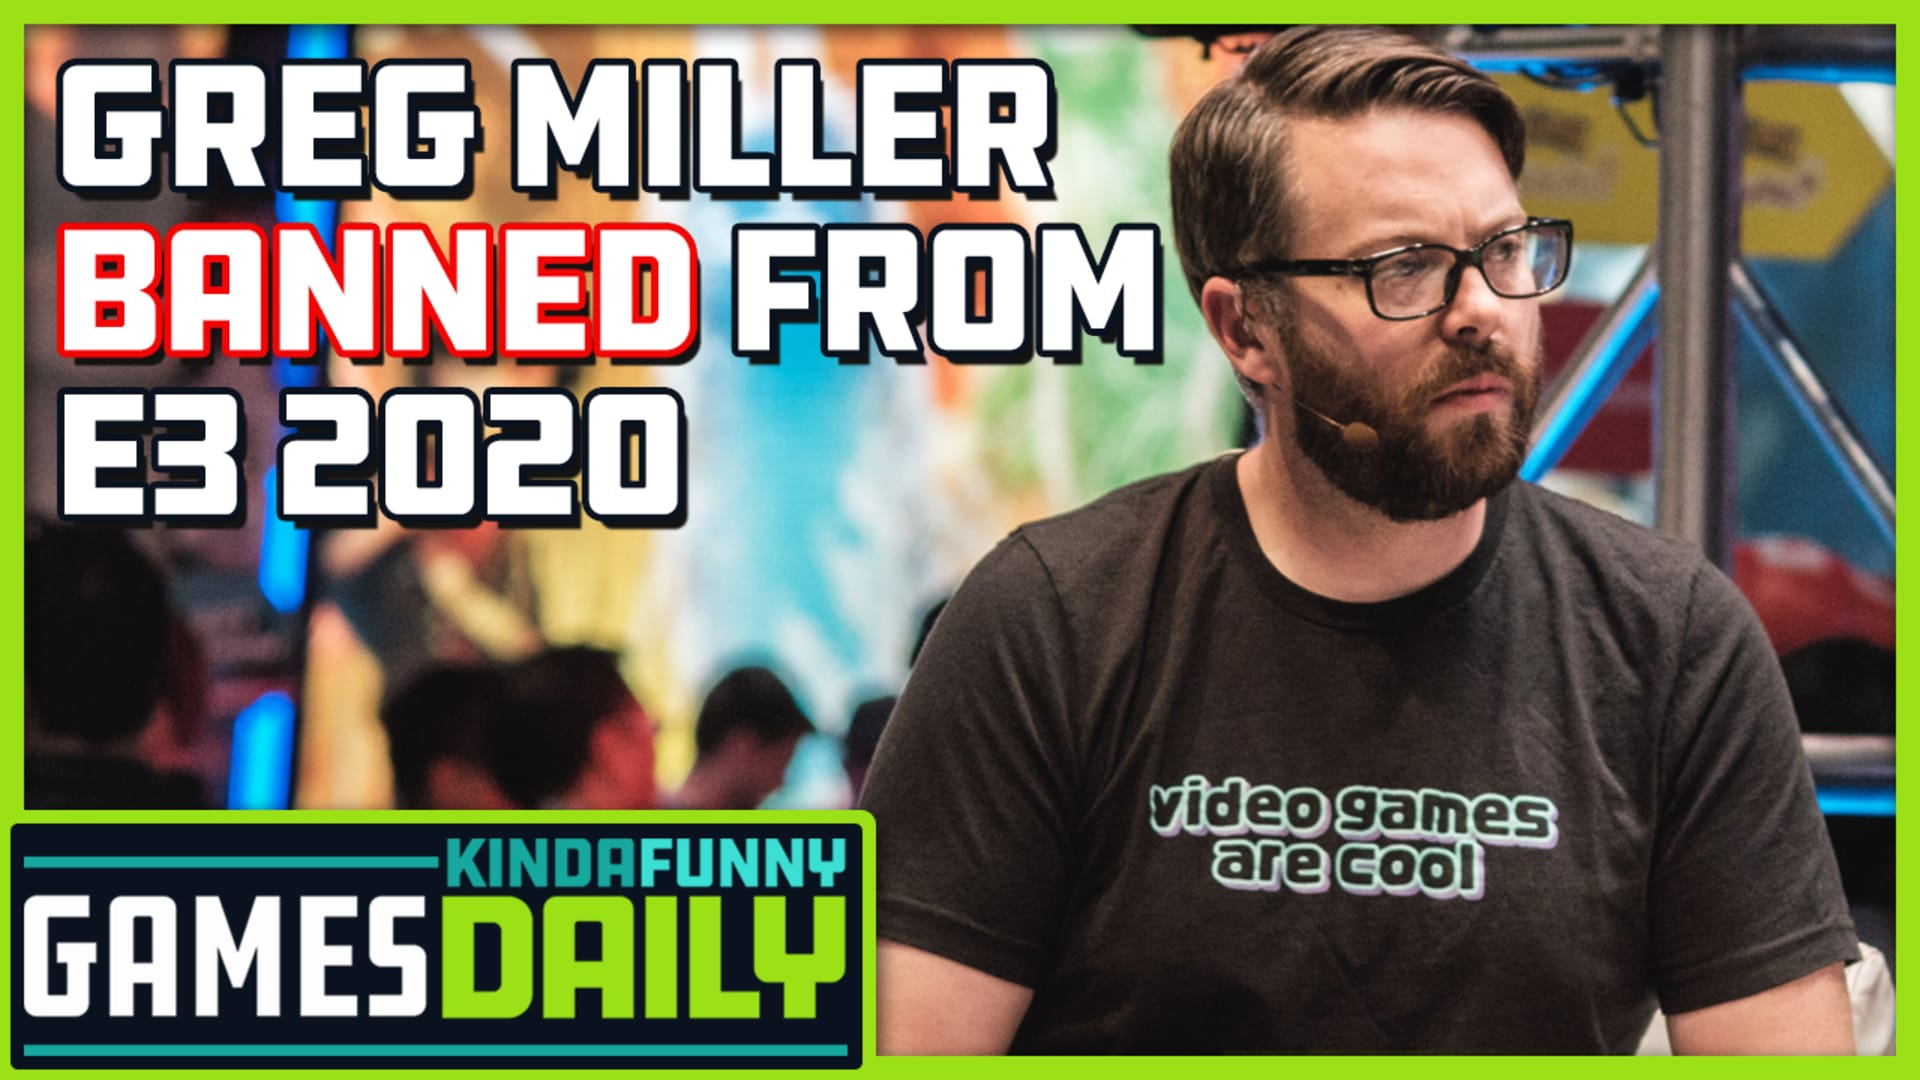 Greg Miller Banned from E3 2020 - Kinda Funny Games Daily 06 27 19